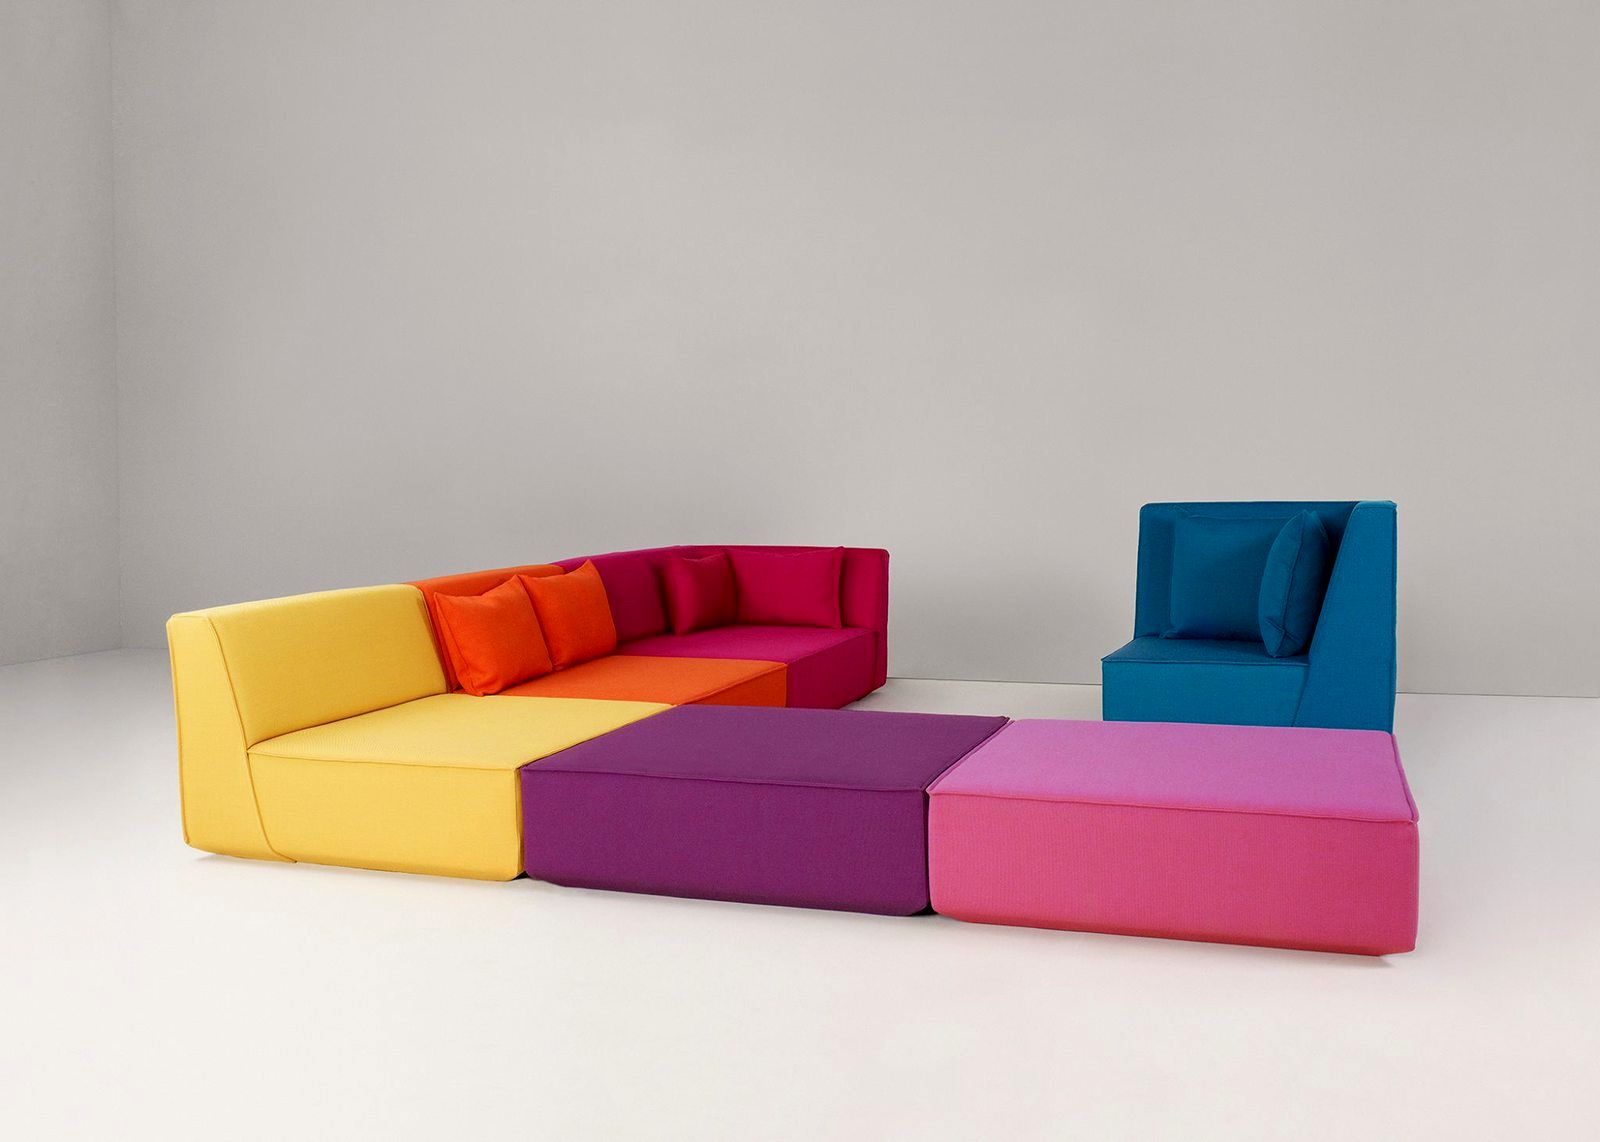 unique mah jong modular sofa online-Fascinating Mah Jong Modular sofa Collection